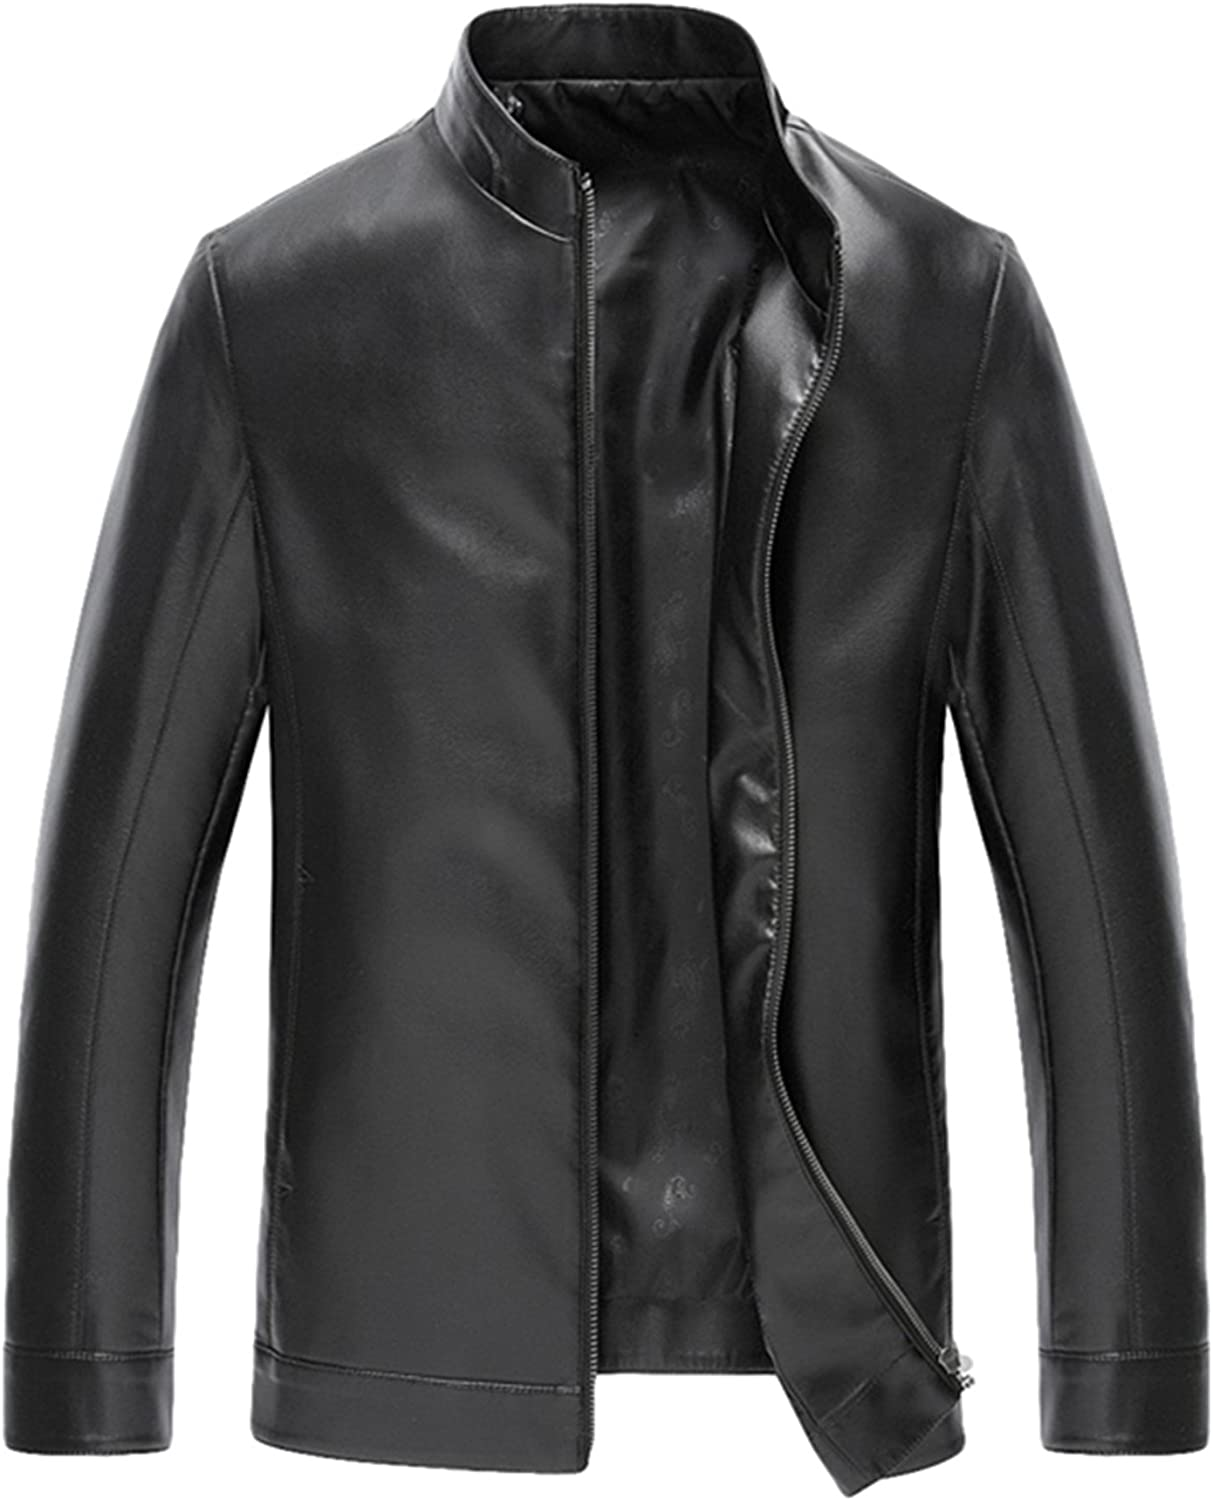 Men's leather Fit leather Leisure zipper leather jacket